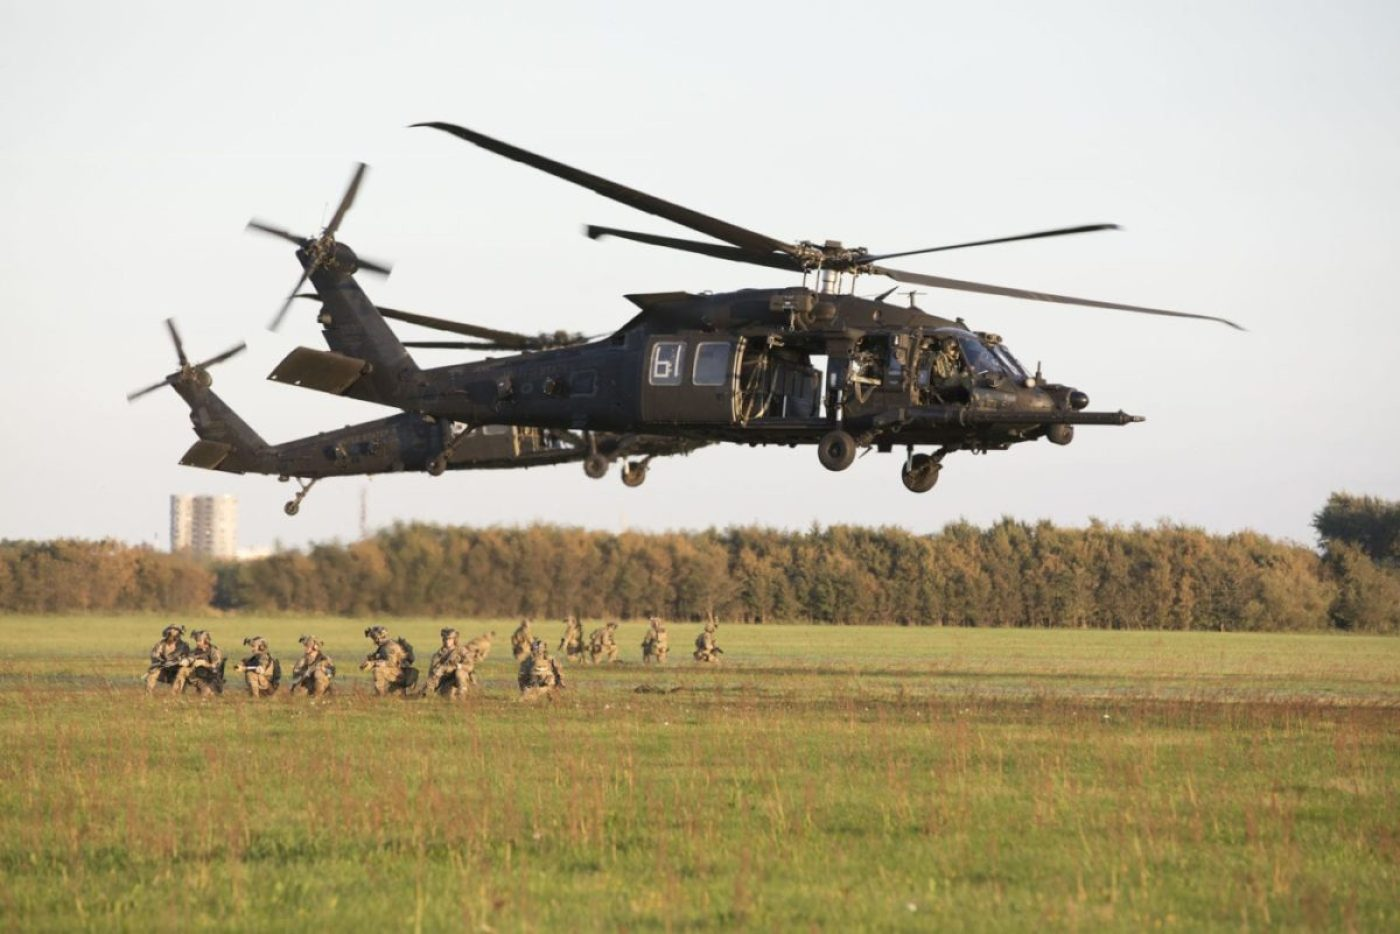 U.S. special operations forces assigned to the 10th Special Forces Group (Airborne) wait in formation after conducting fast rope maneuvers out of a UH-60 Black Hawk helicopter near Aalborg, Denmark, Sep. 02, 2018. (U.S. Army photo by Staff Sgt. Steven K. Young)